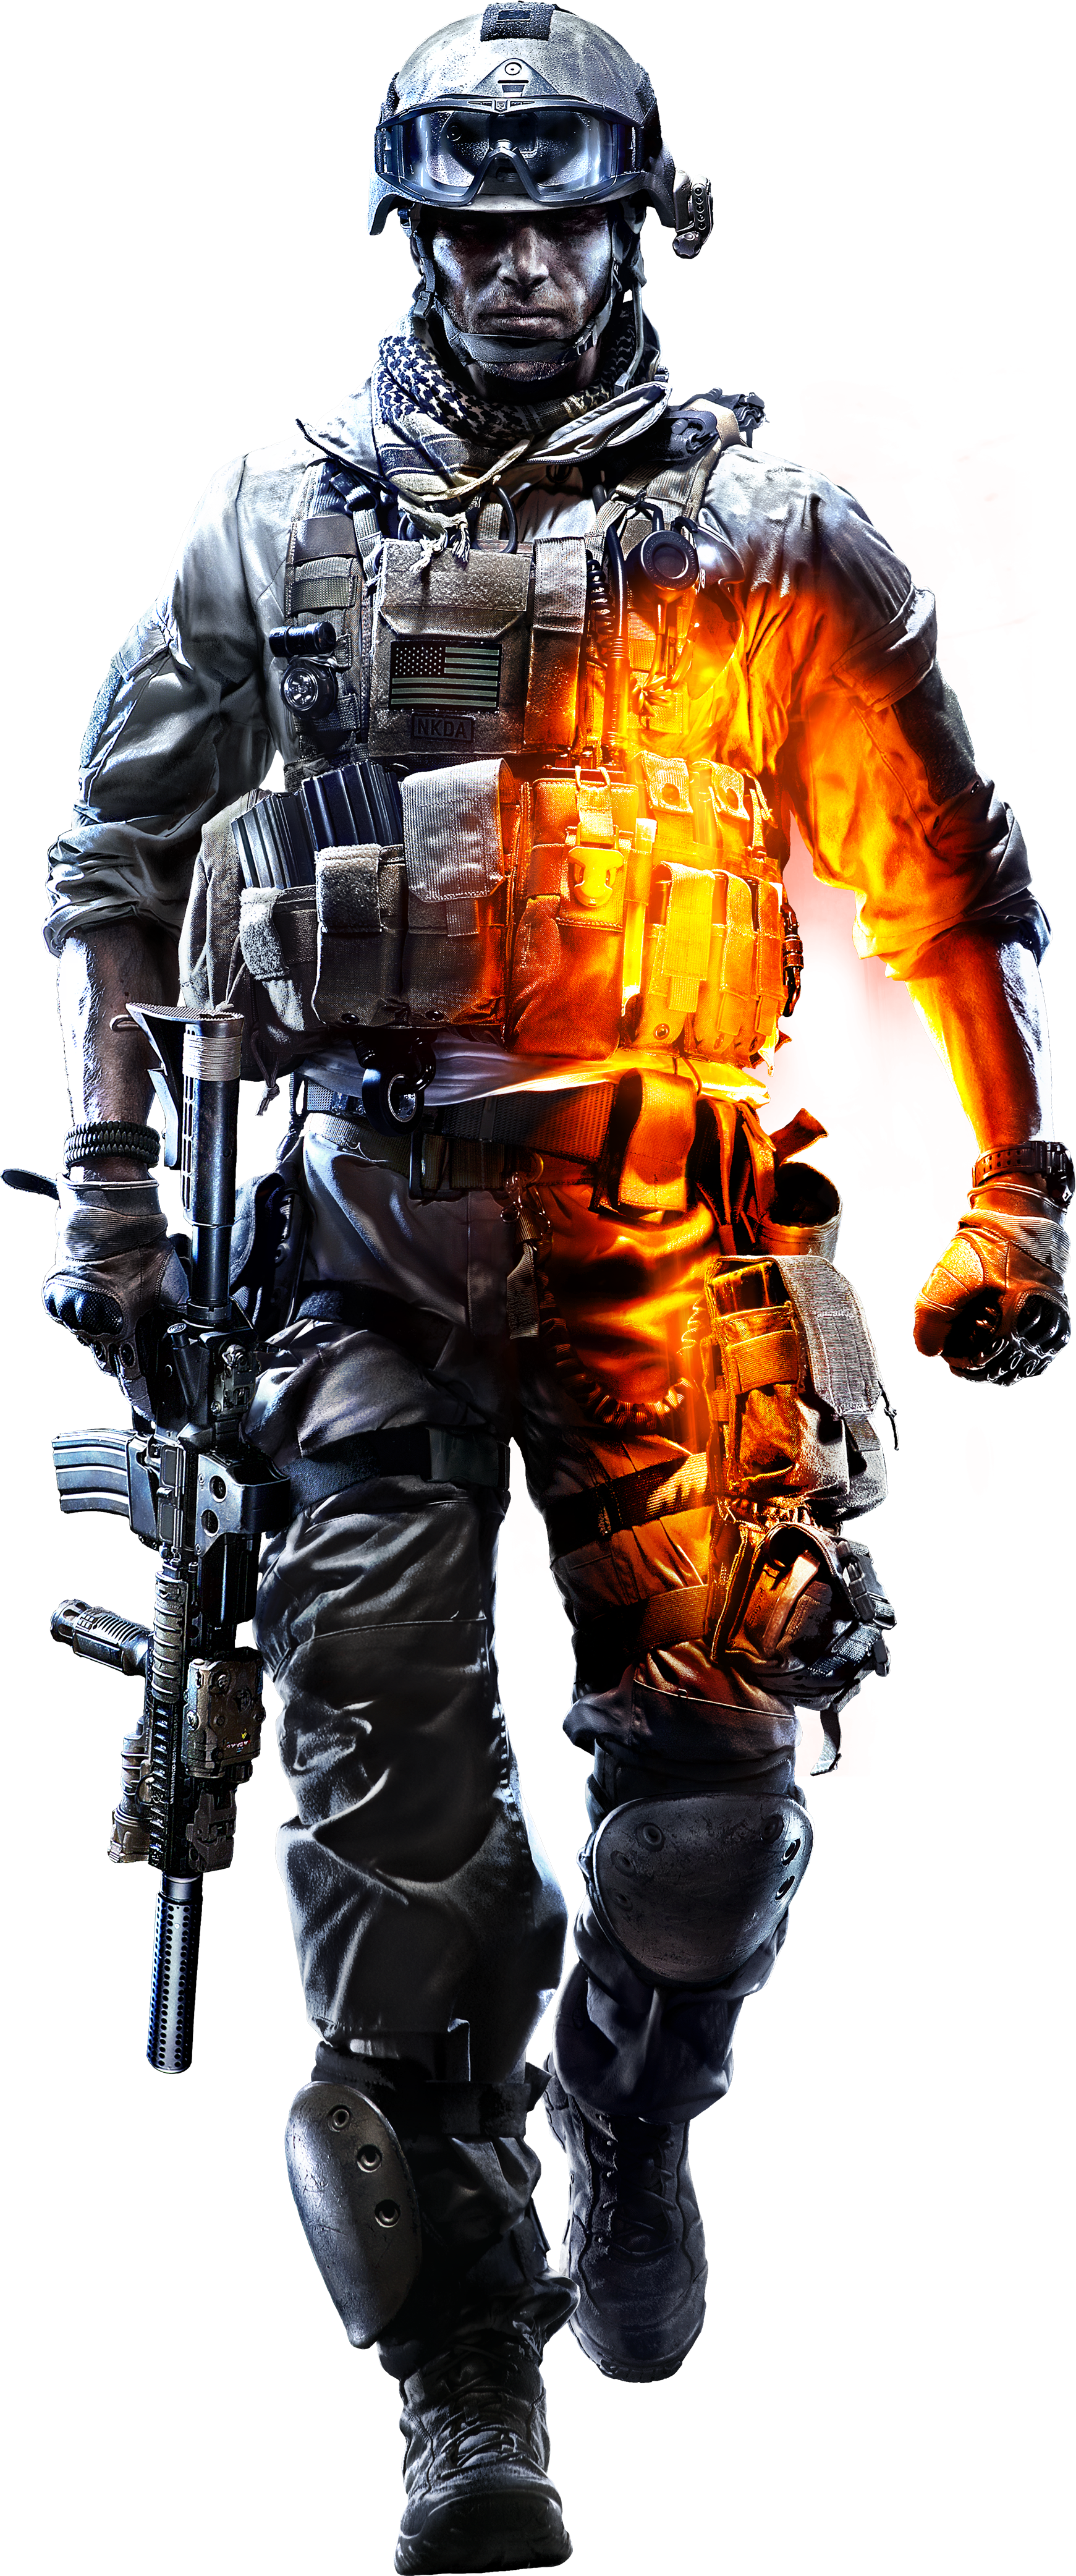 Image - Promotional Soldier BF3 HQ Render.png | Battlefield Wiki | FANDOM  powered by Wikia - Battlefield HD PNG